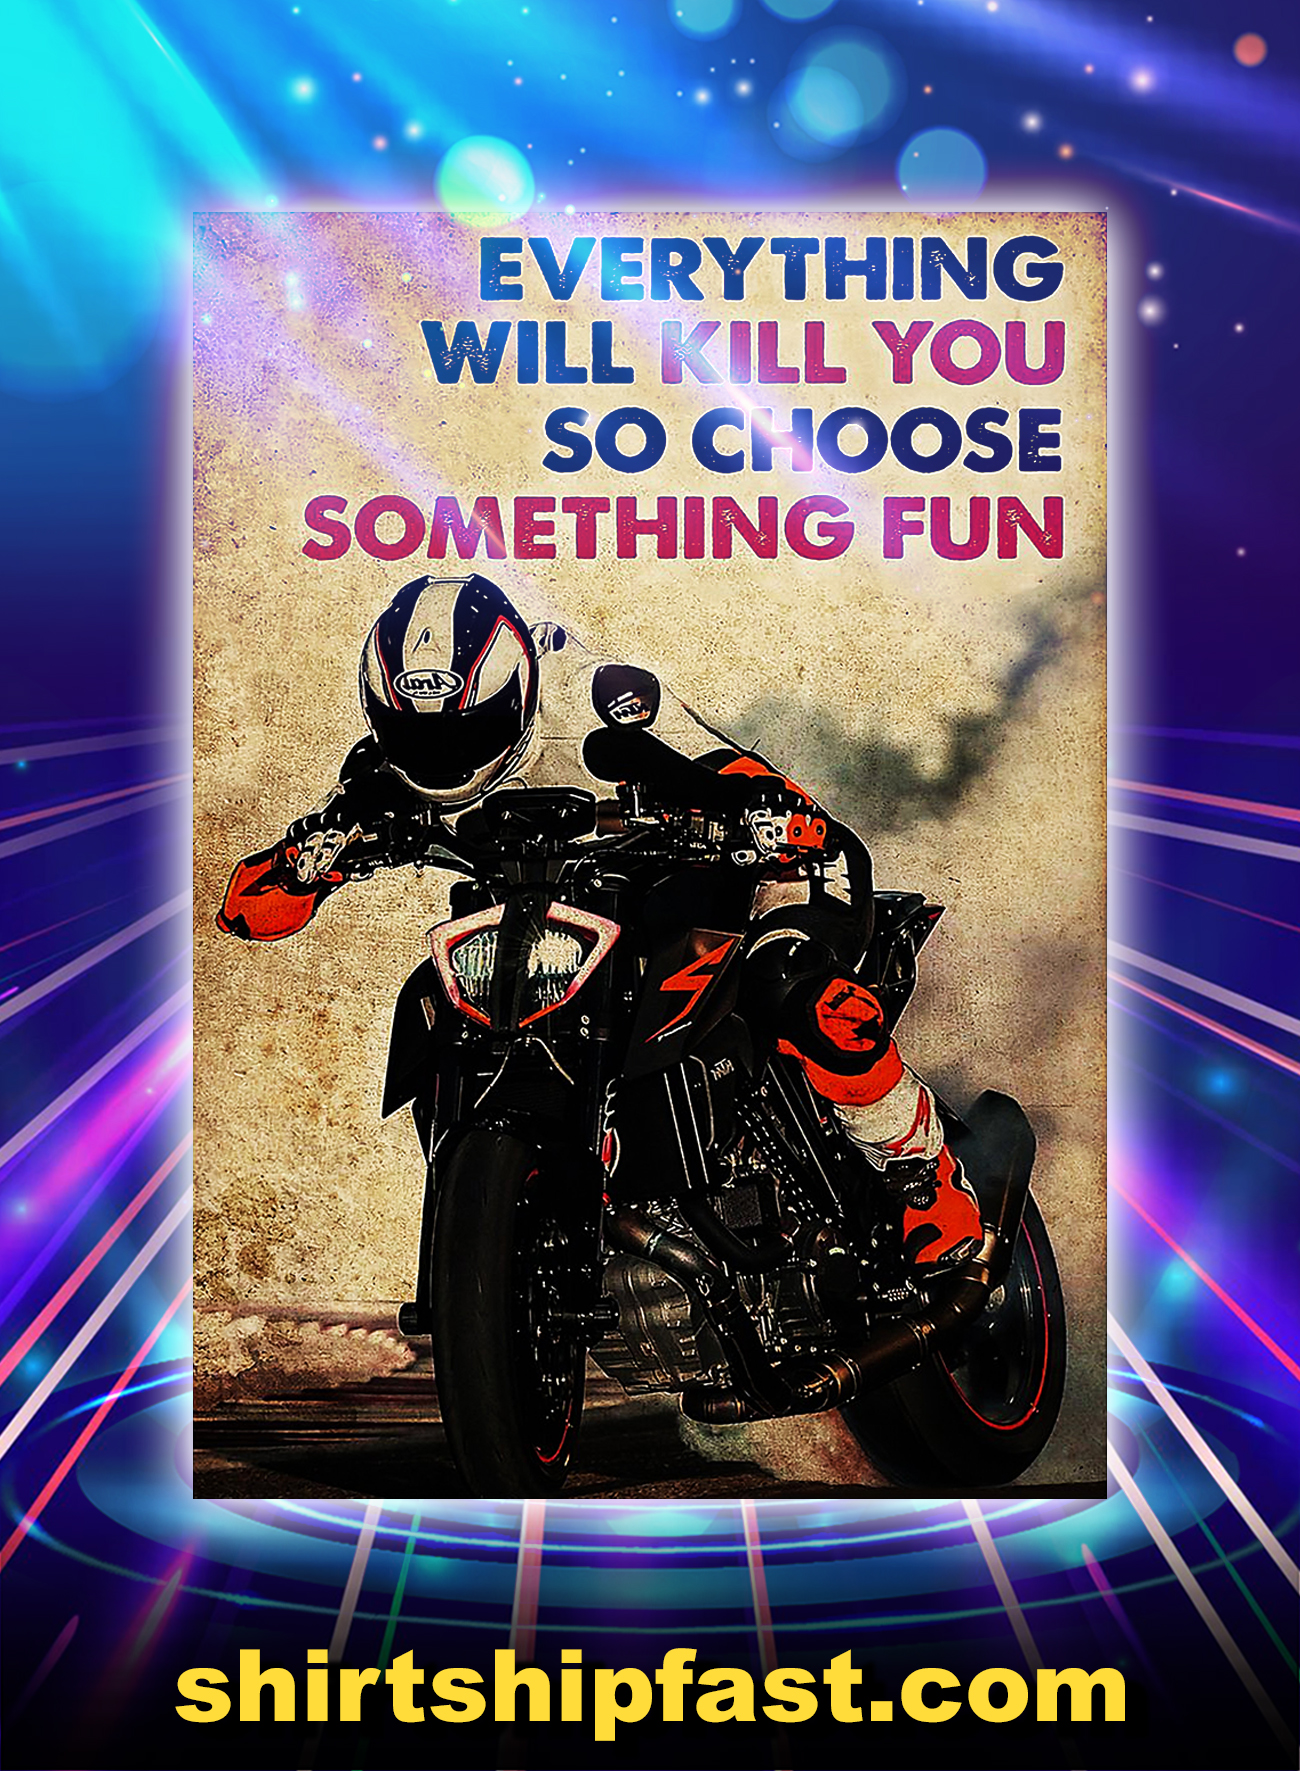 Motor racer everything will kill you so choose something fun poster - A4